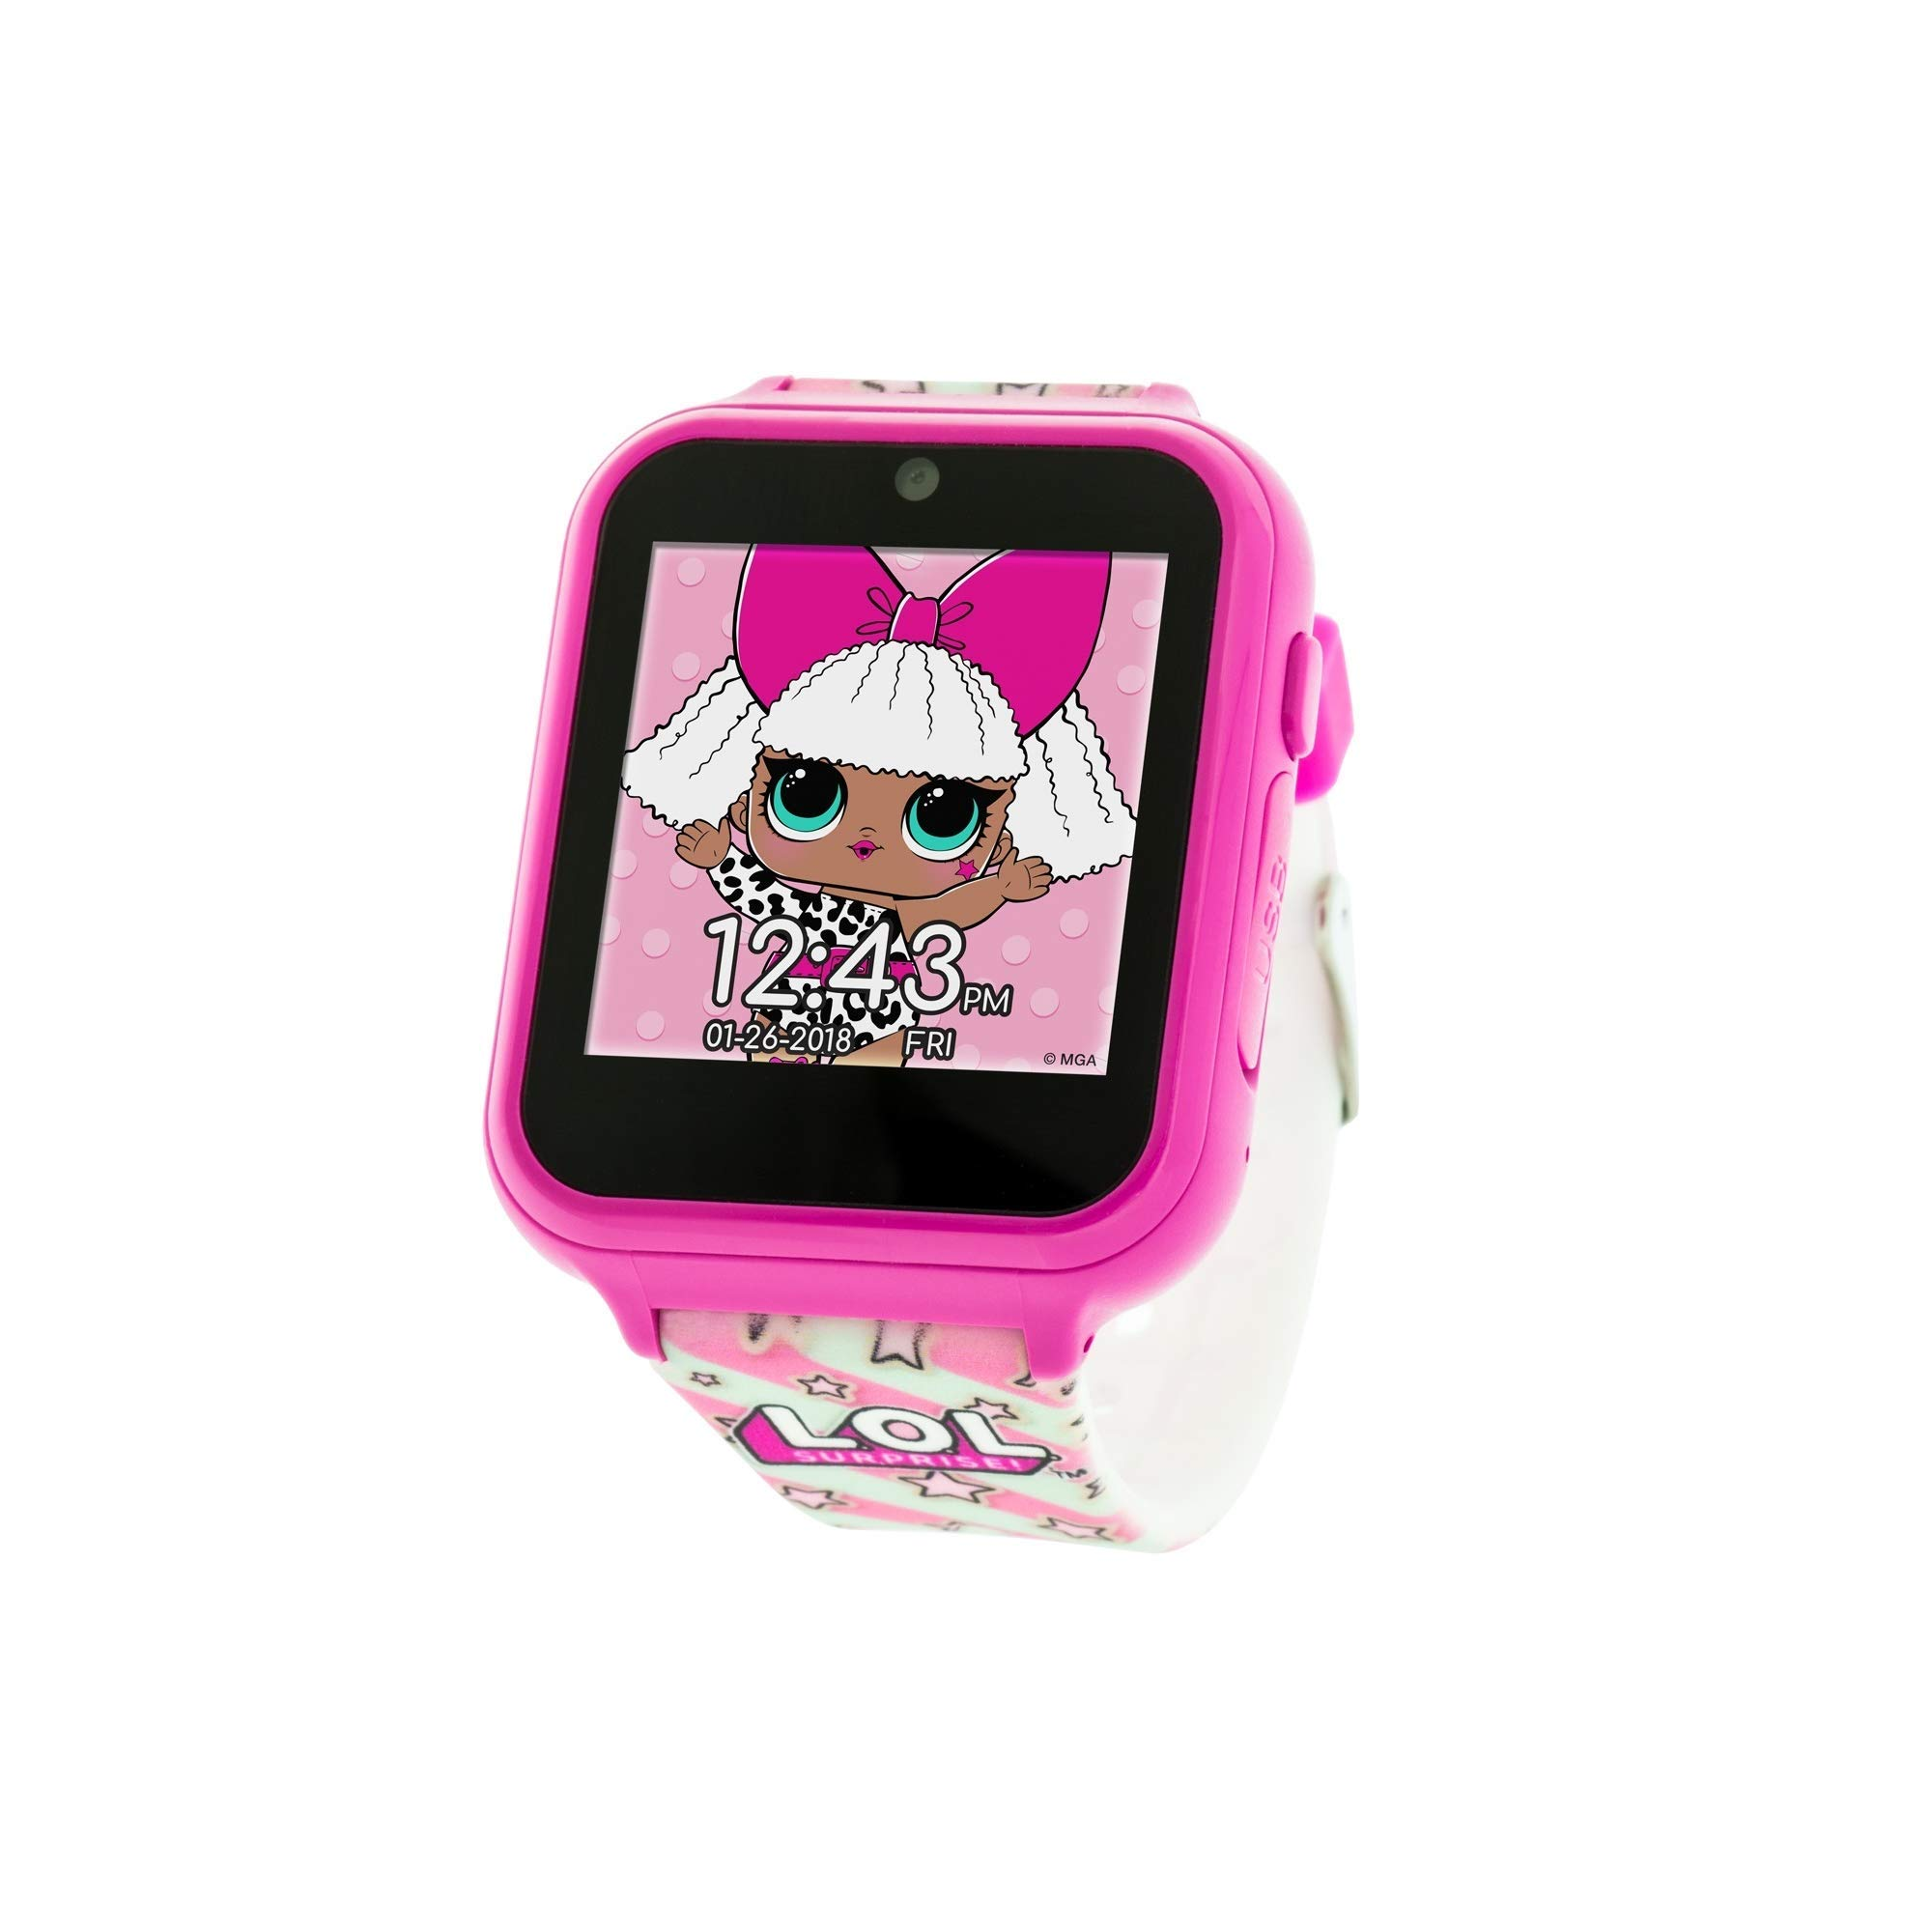 L.O.L. Surprise! Touch-Screen Smartwatch Built in Selfie-Camera Easy-to-Buckle Strap Pink Smart Watch - Model: LOL4104